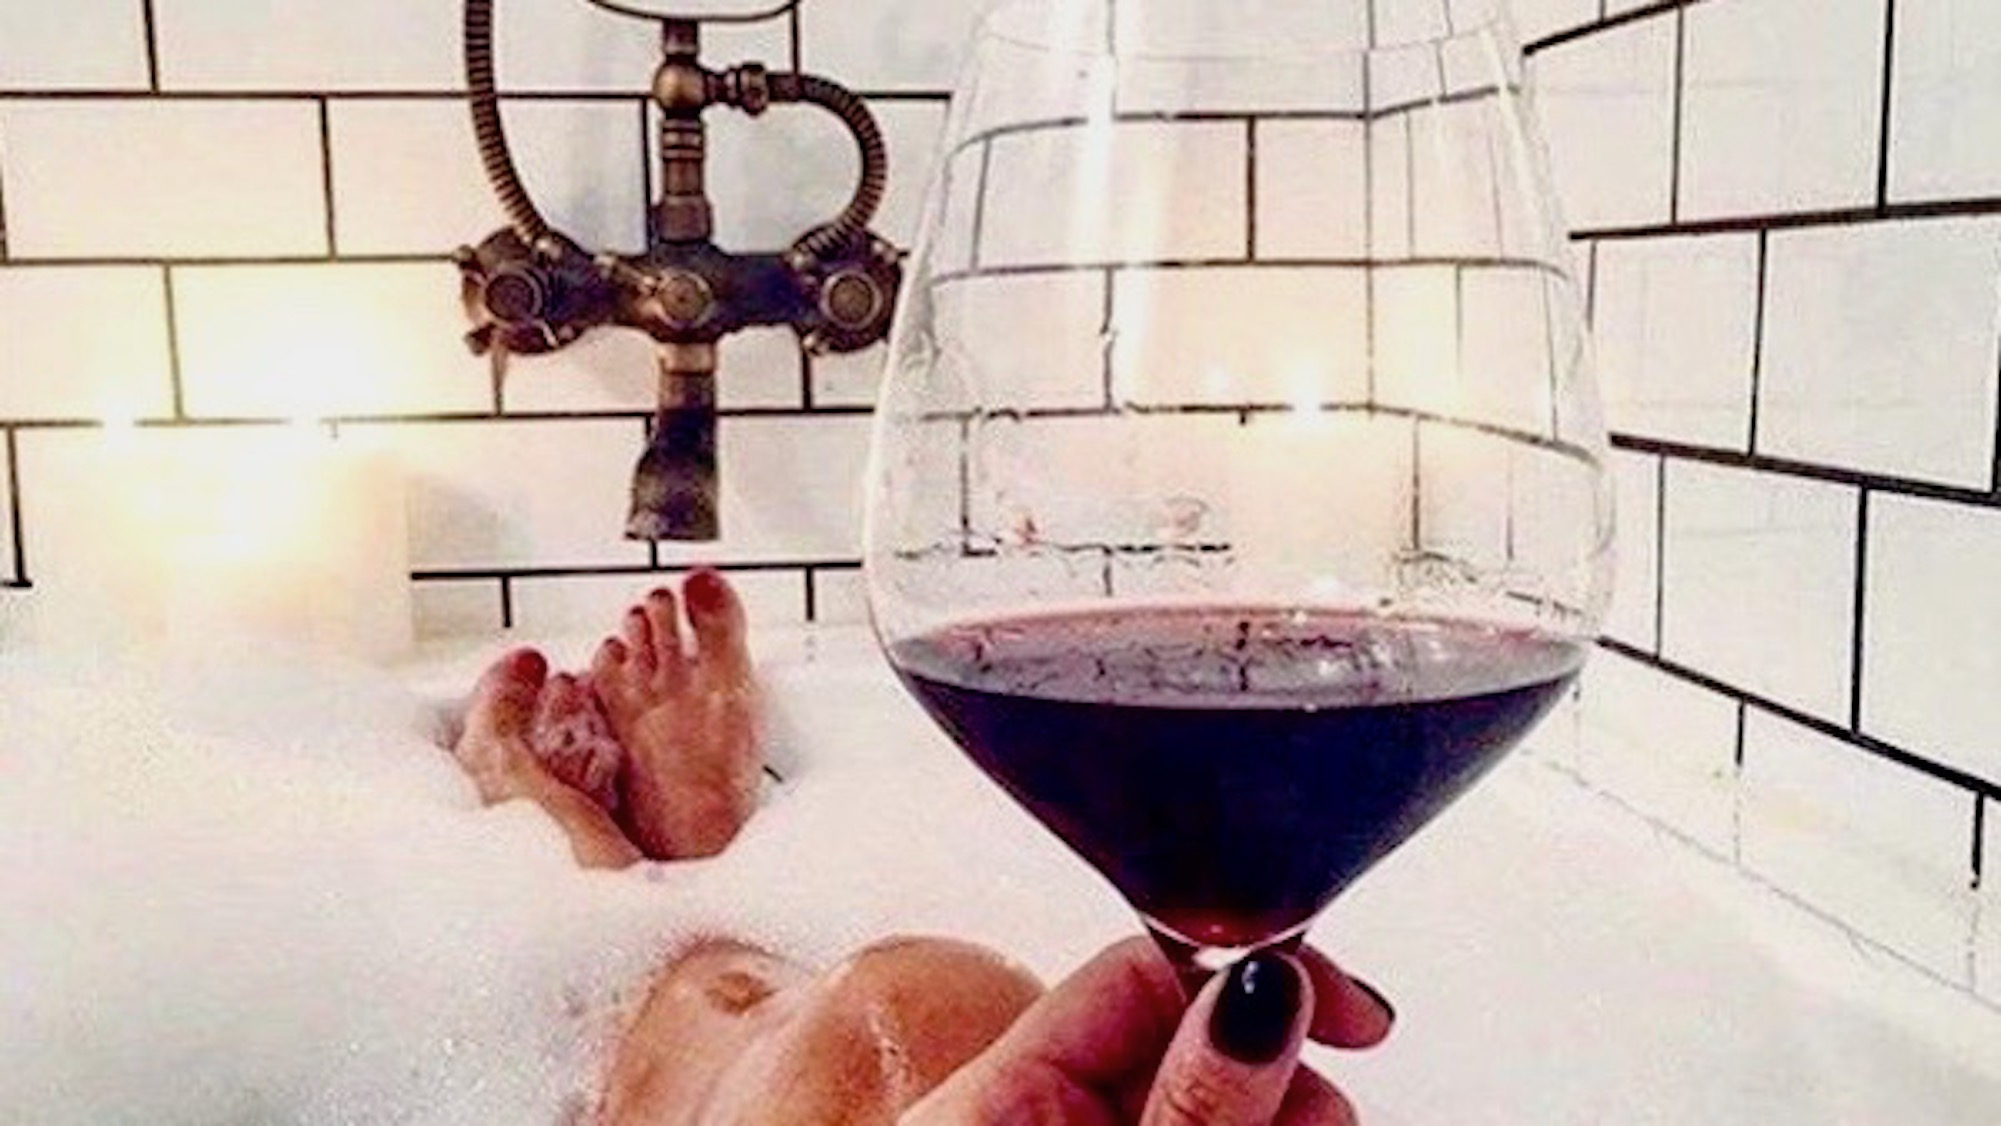 unwind with the best wines for bubble baths, tub soak,